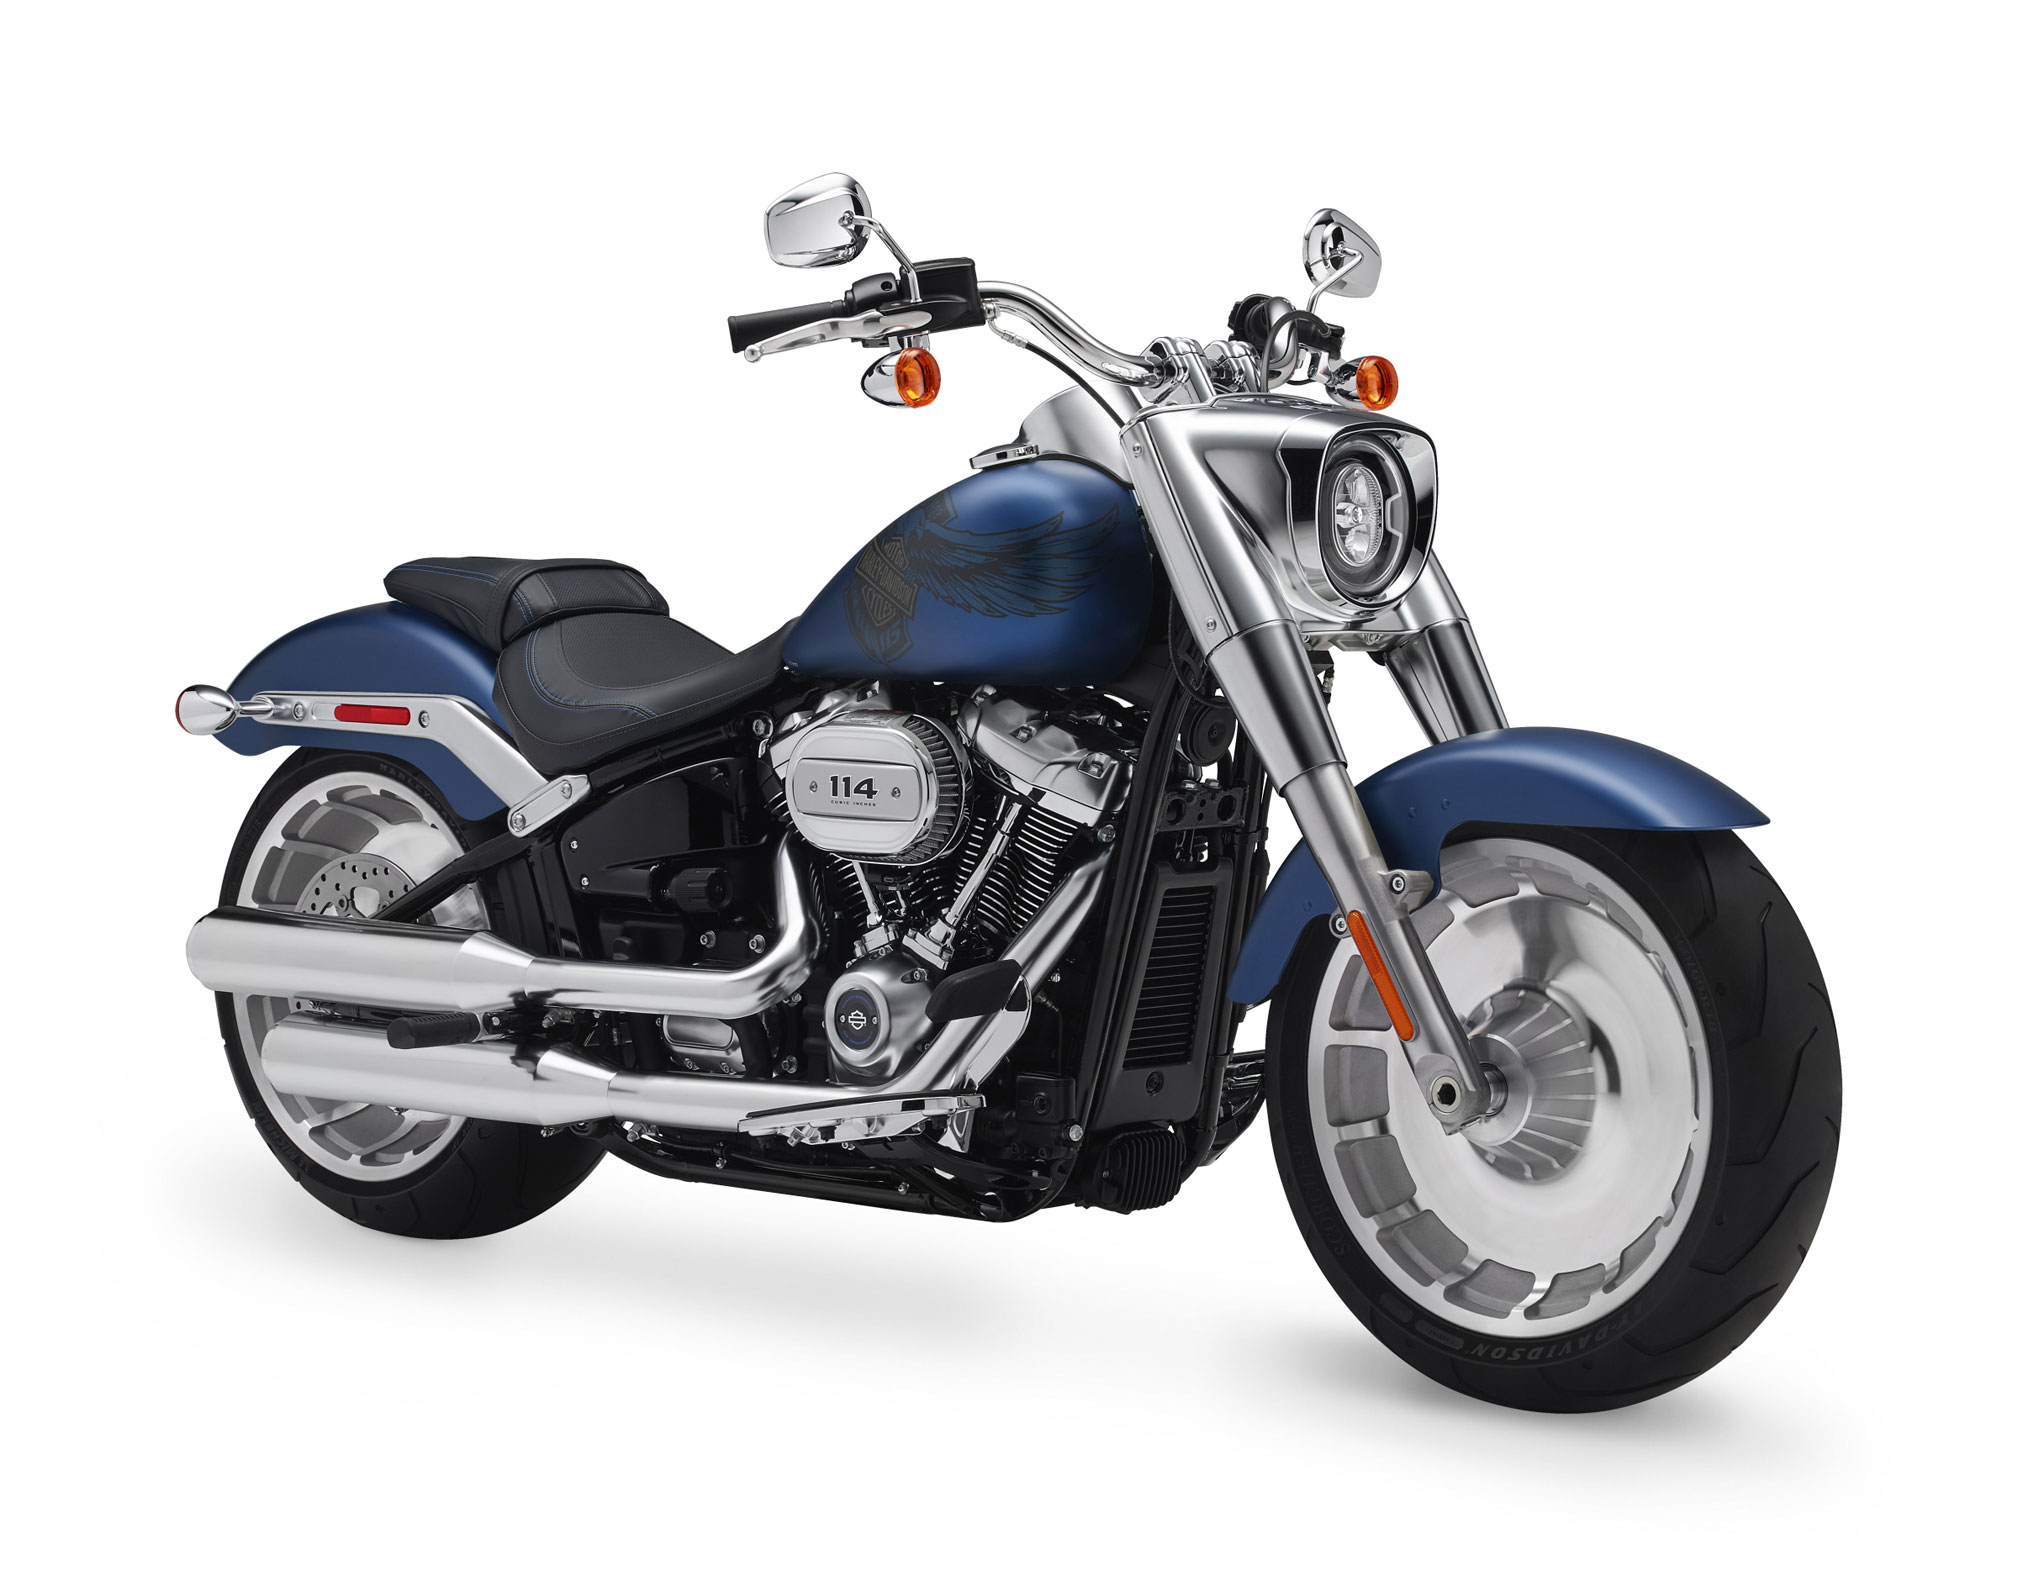 2018 harley davidson fat boy 115th anniversary anx review total motorcycle. Black Bedroom Furniture Sets. Home Design Ideas